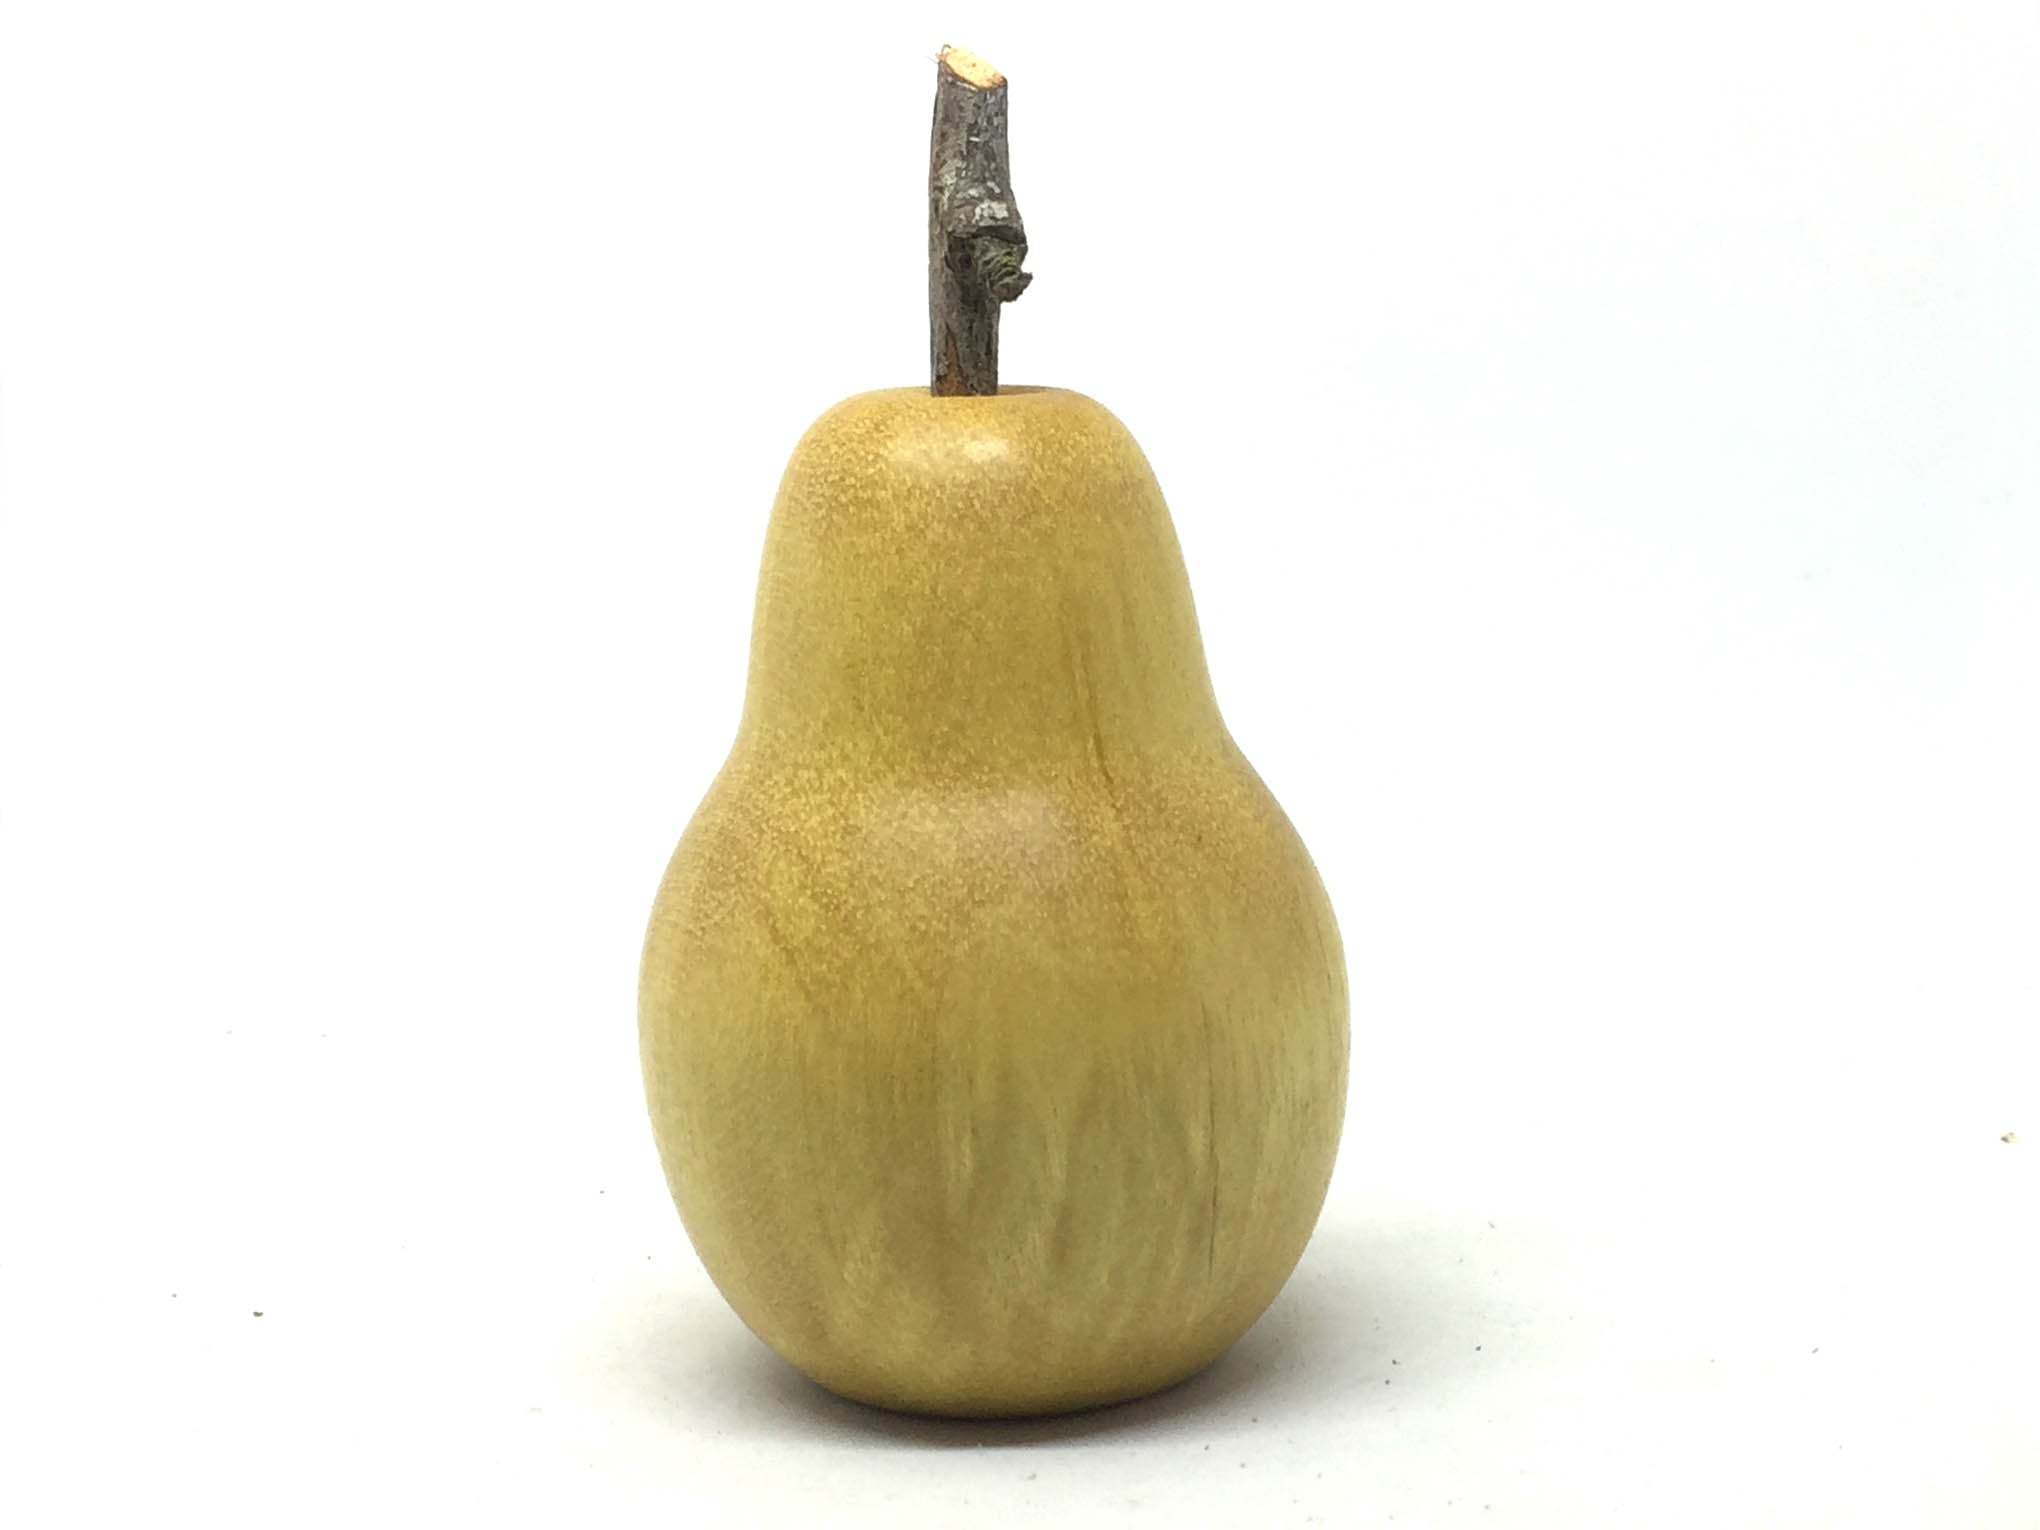 LV-4961  Hand Turned Pear Shaped Salt & Pepper Shaker, Secret Compartment from Yellowheart Wood